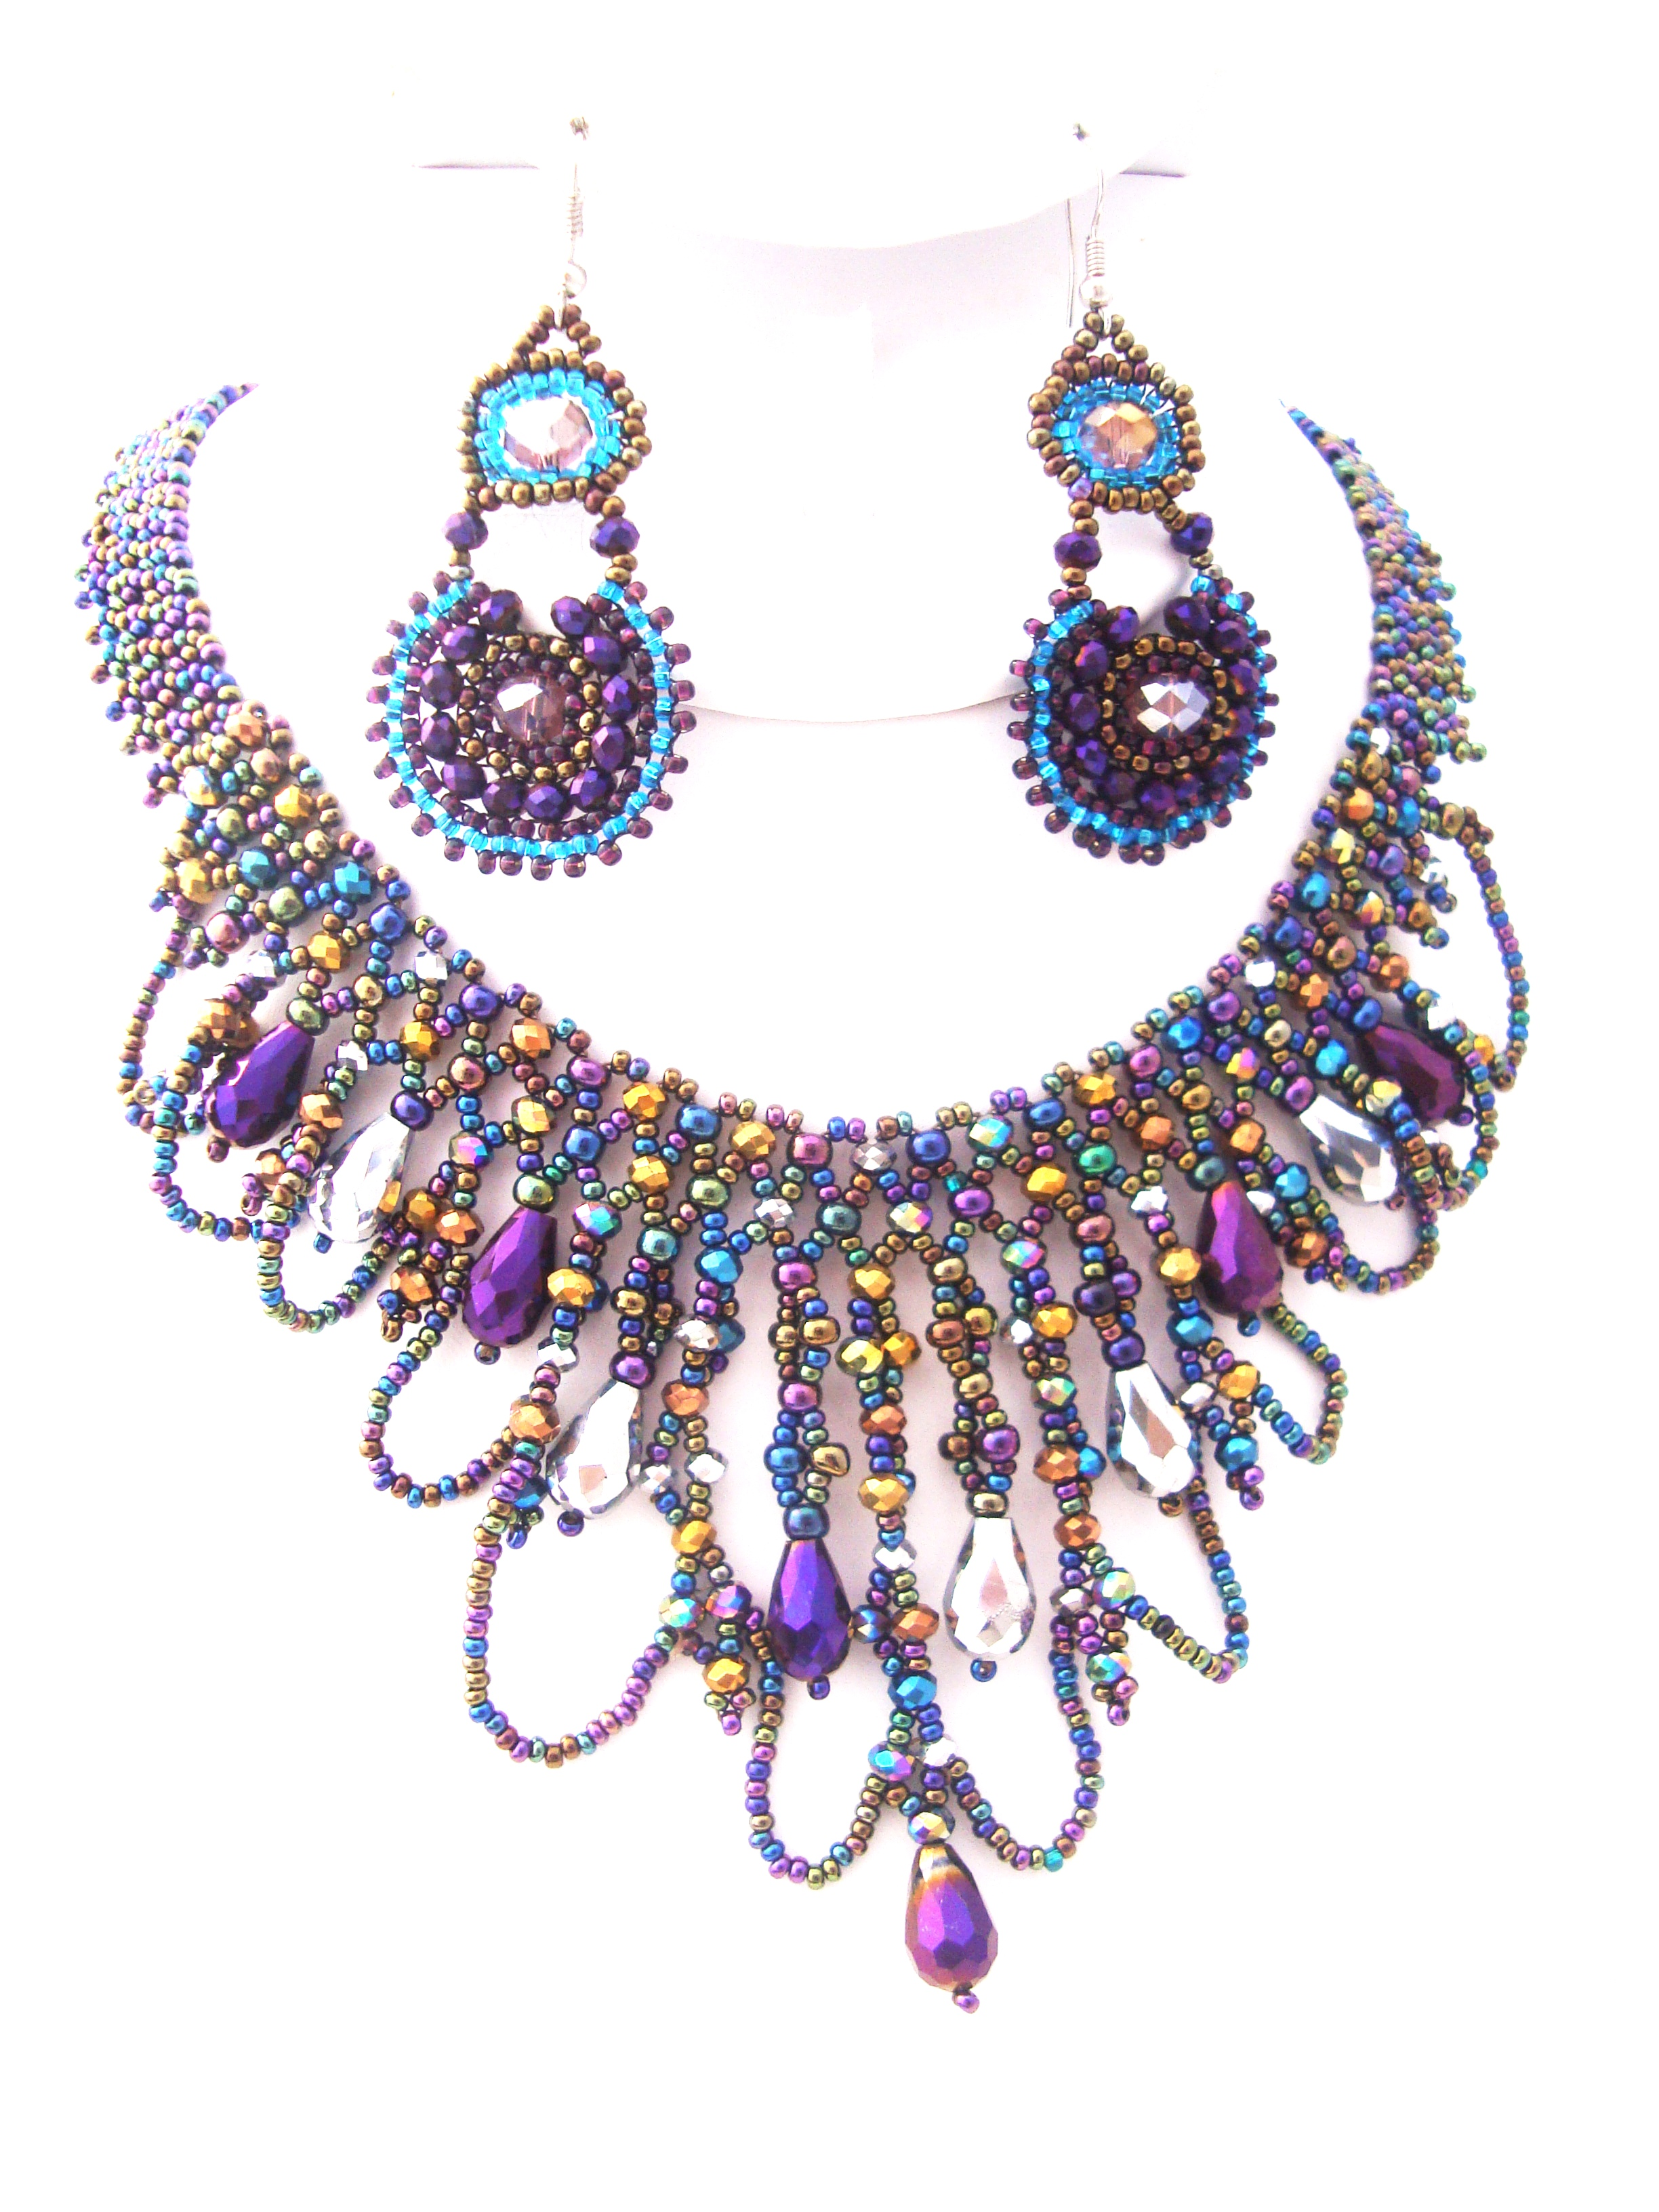 Green and purple chandelier necklace set teresas precious beads 18 length magnetic clasp made with 110 irish green and 110 gold seed bead purple and green tear drop chandelier necklace with matching earrings aloadofball Gallery